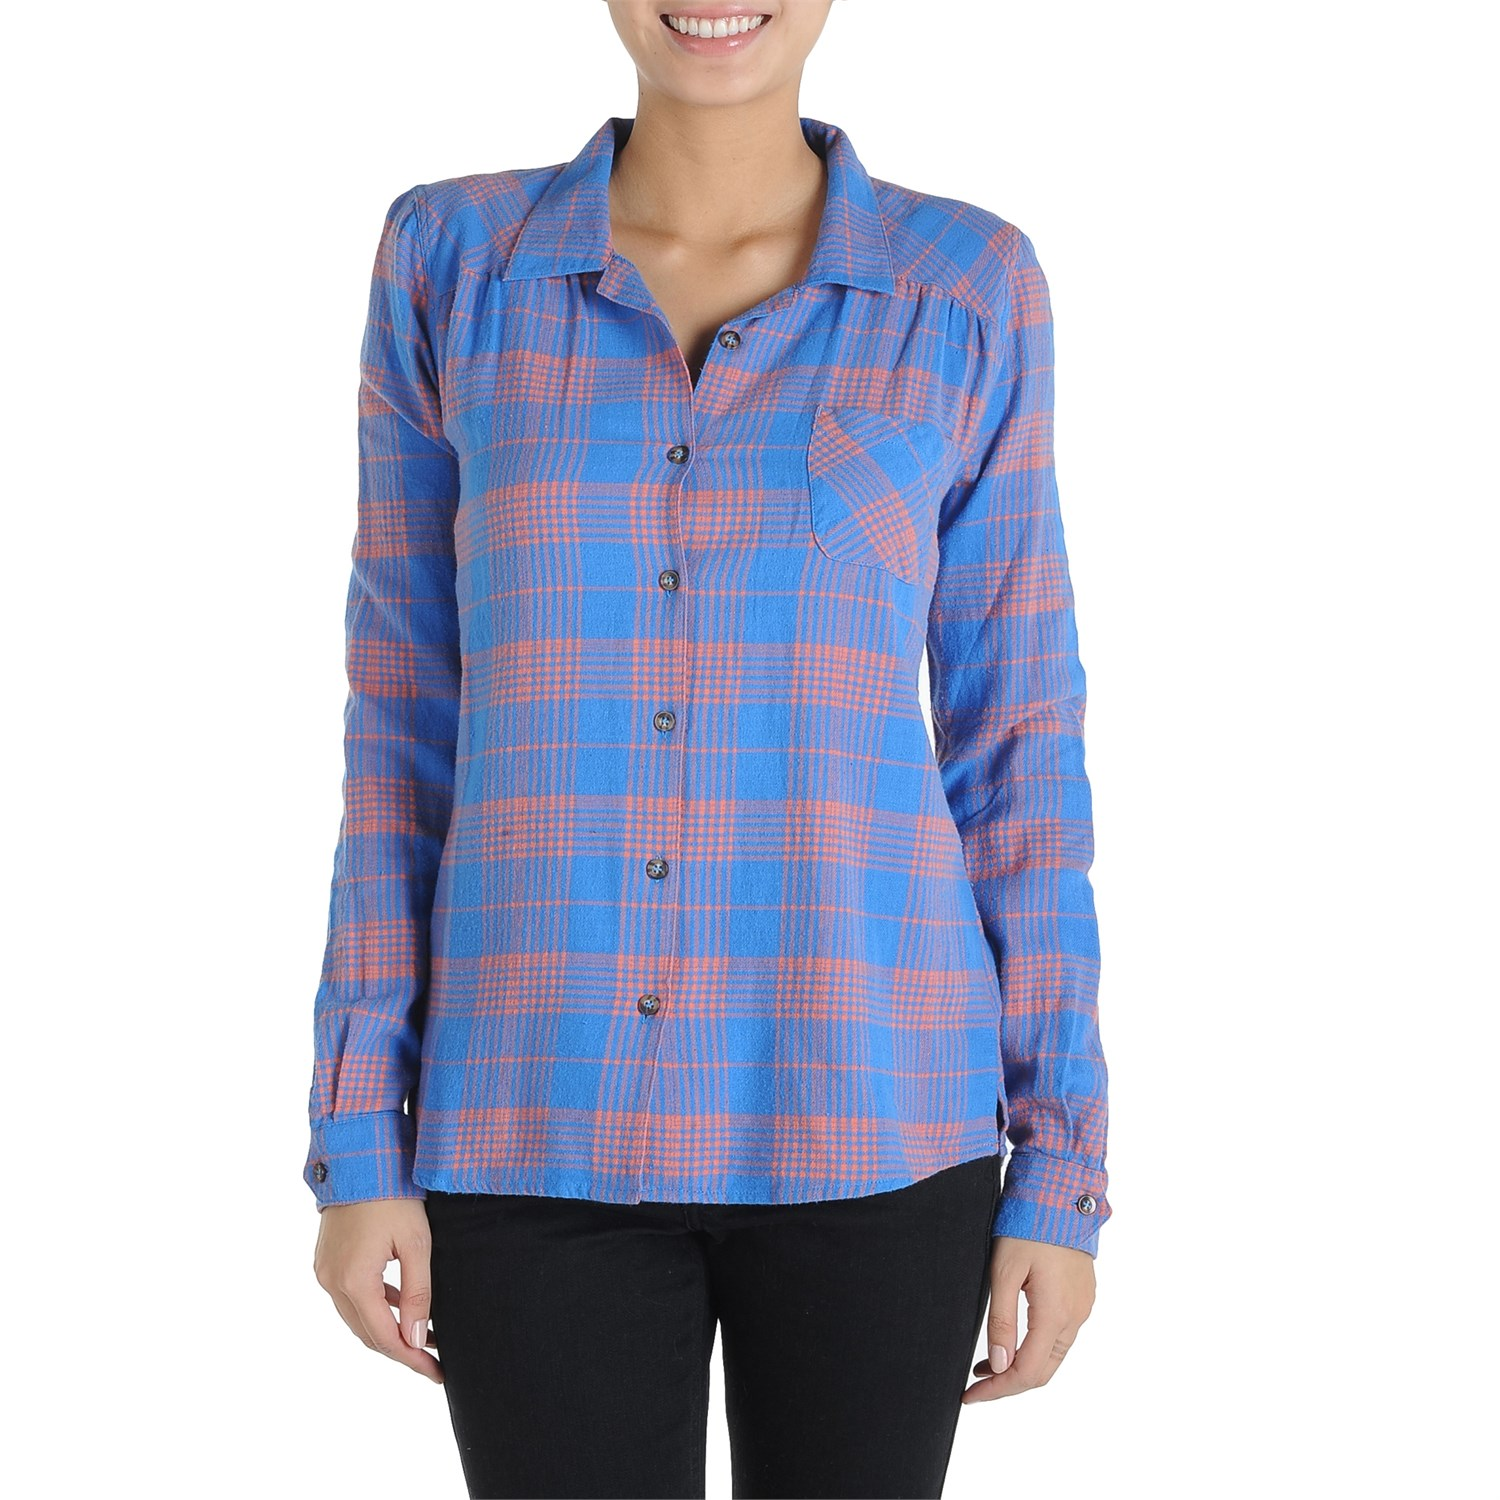 Volcom plaid it out button down shirt women 39 s evo for Plaid button down shirts for women